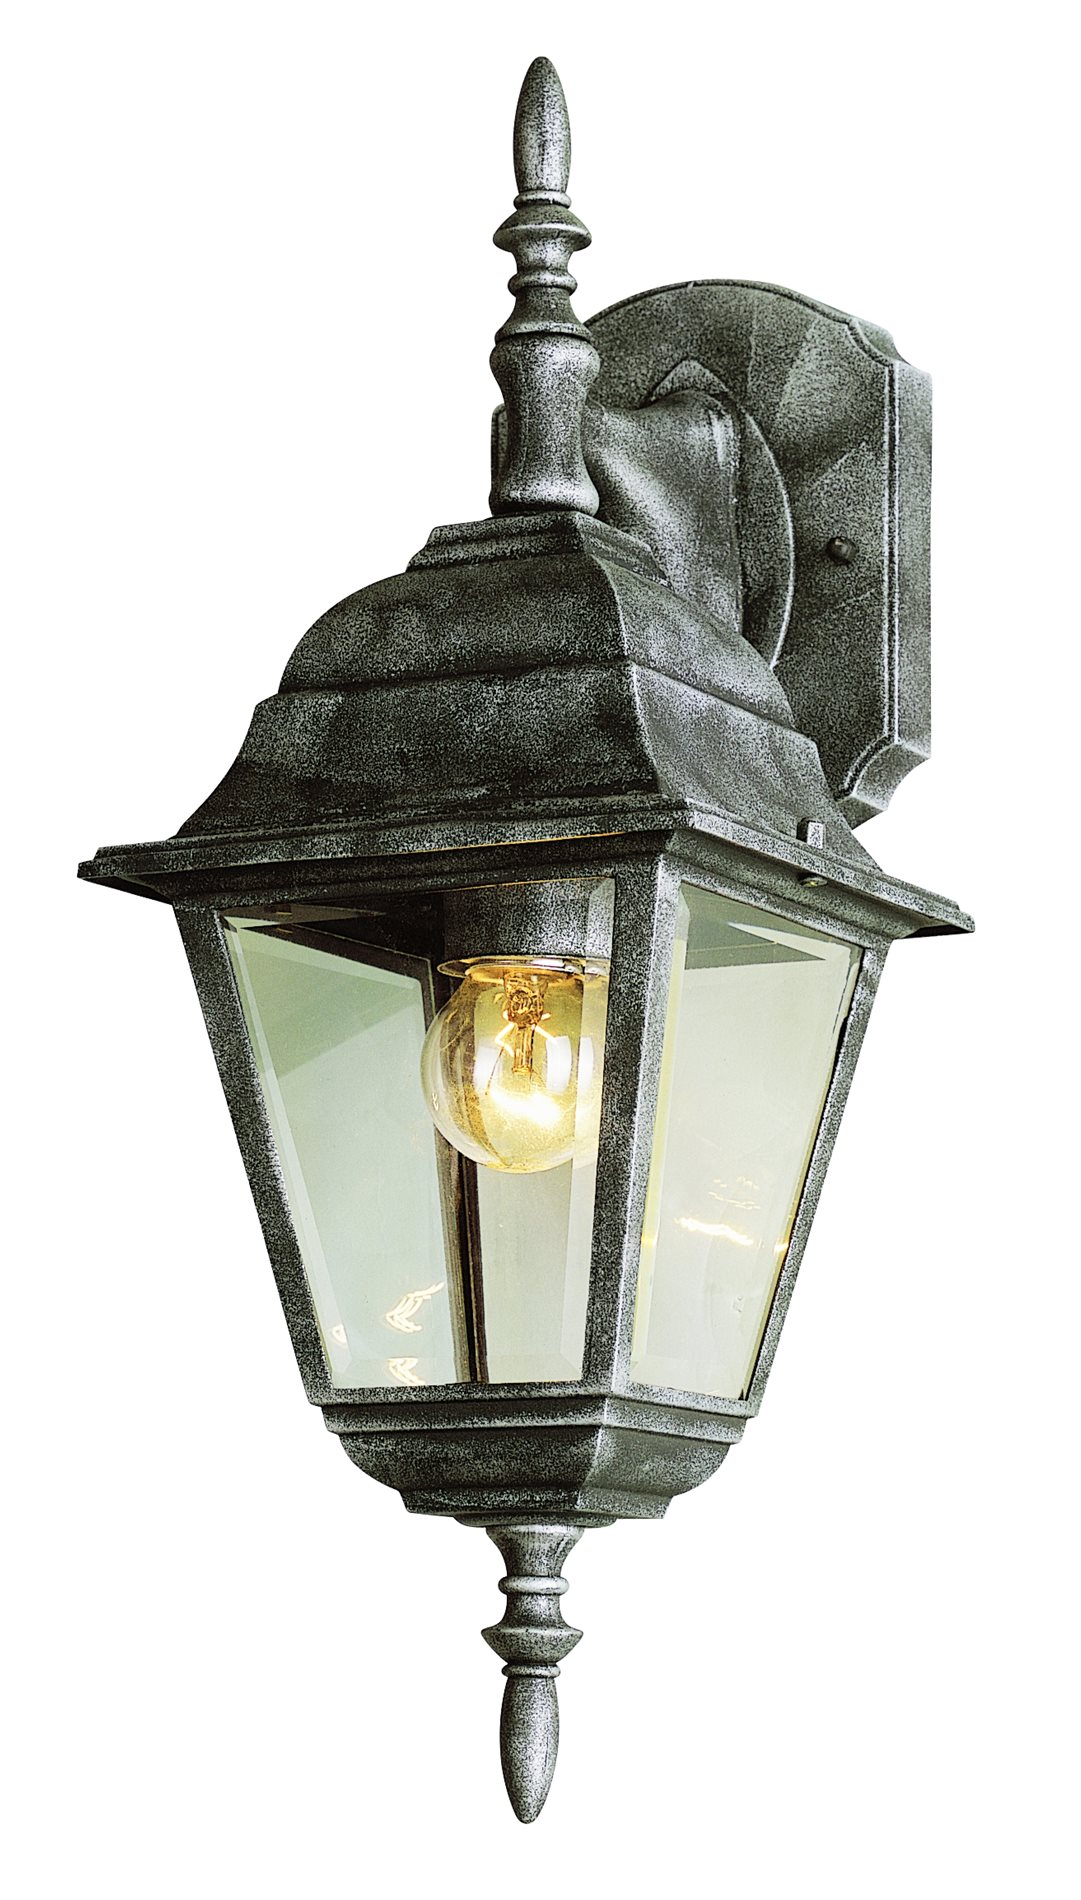 Transitional Outdoor Wall Lights : Trans Globe Lighting 4411 Transitional Outdoor Wall Sconce TG-4411